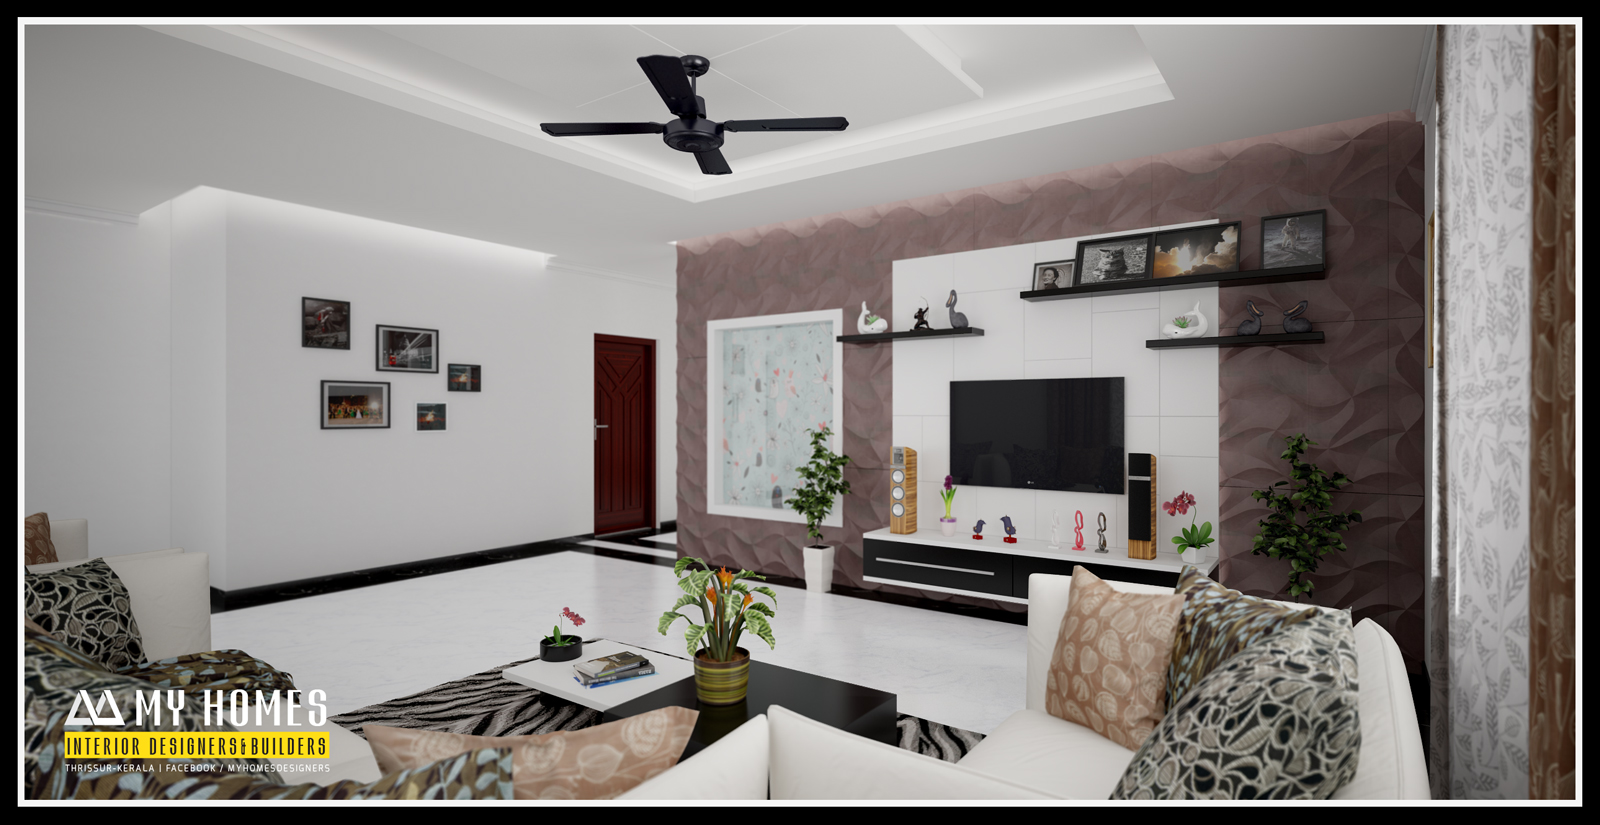 Kerala interior design ideas from designing company thrissur for Kerala model interior designs